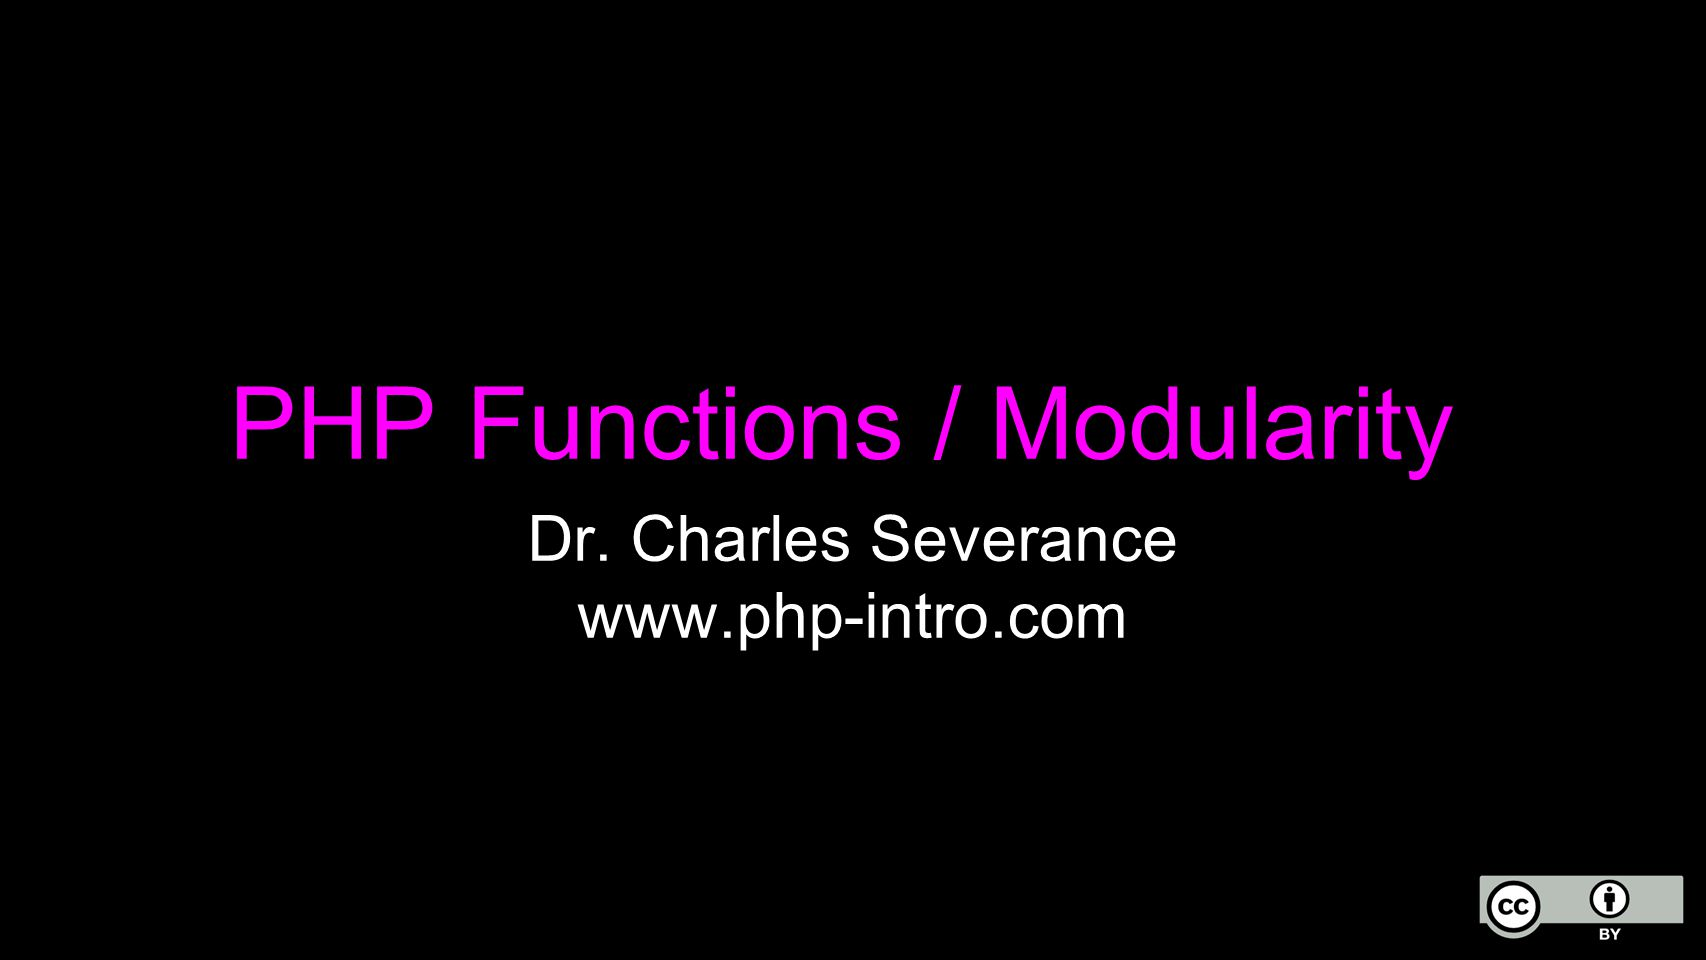 PHP Functions / Modularity